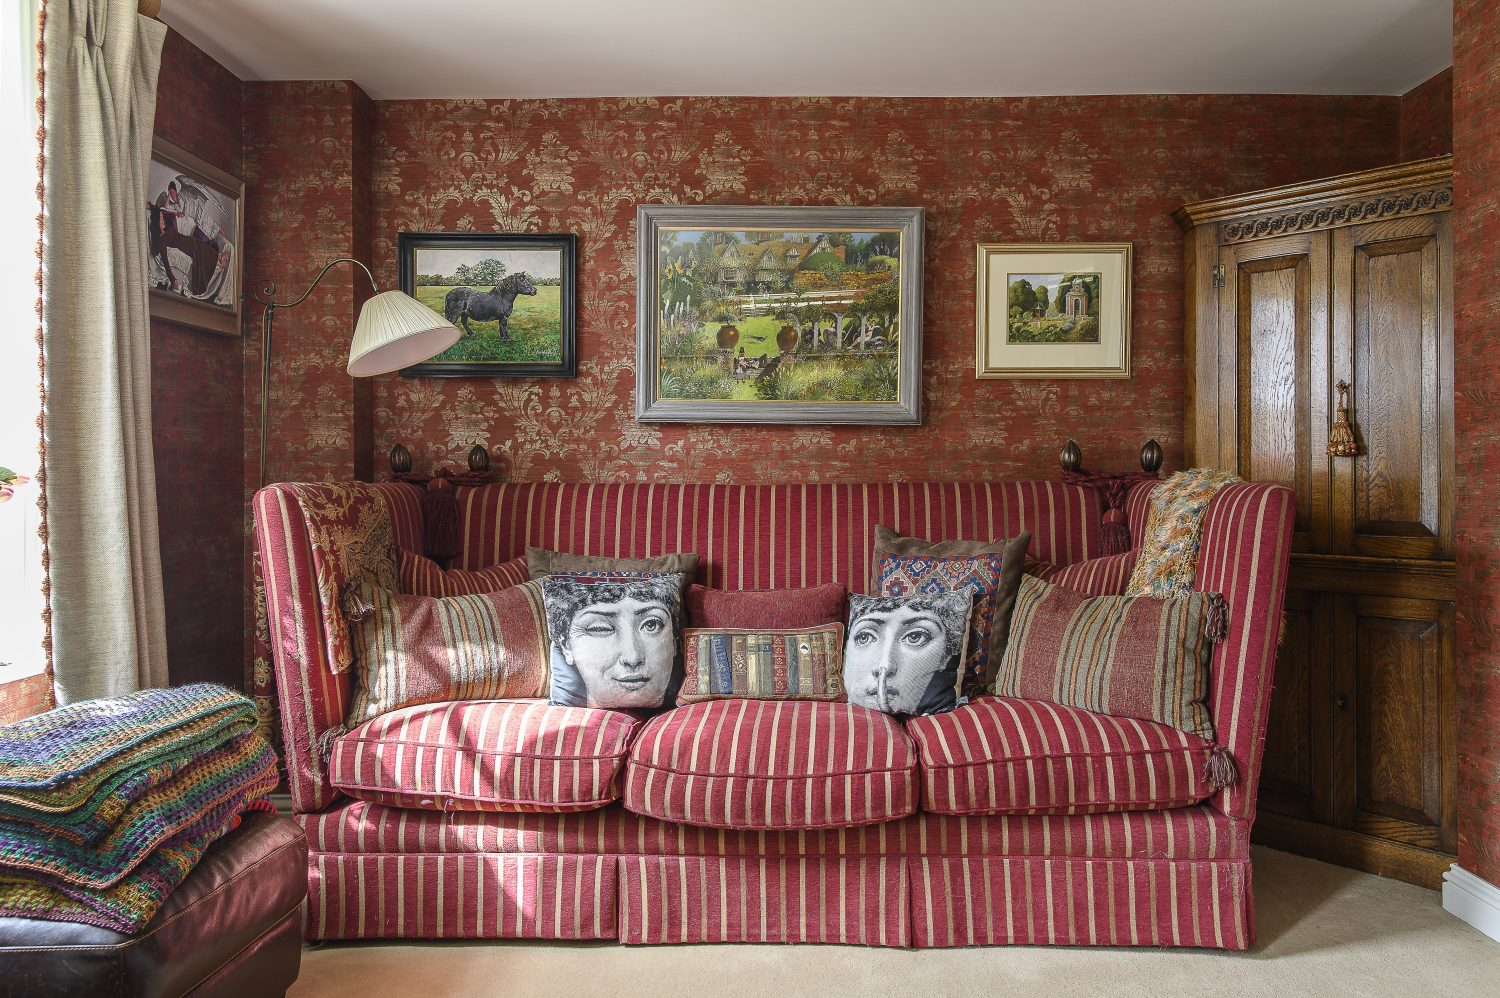 The sitting room is papered in Classic Silks by Galerie. Playful Fornasetti cushions nestle on the sofa below some of Tim and Eve's favourite artworks